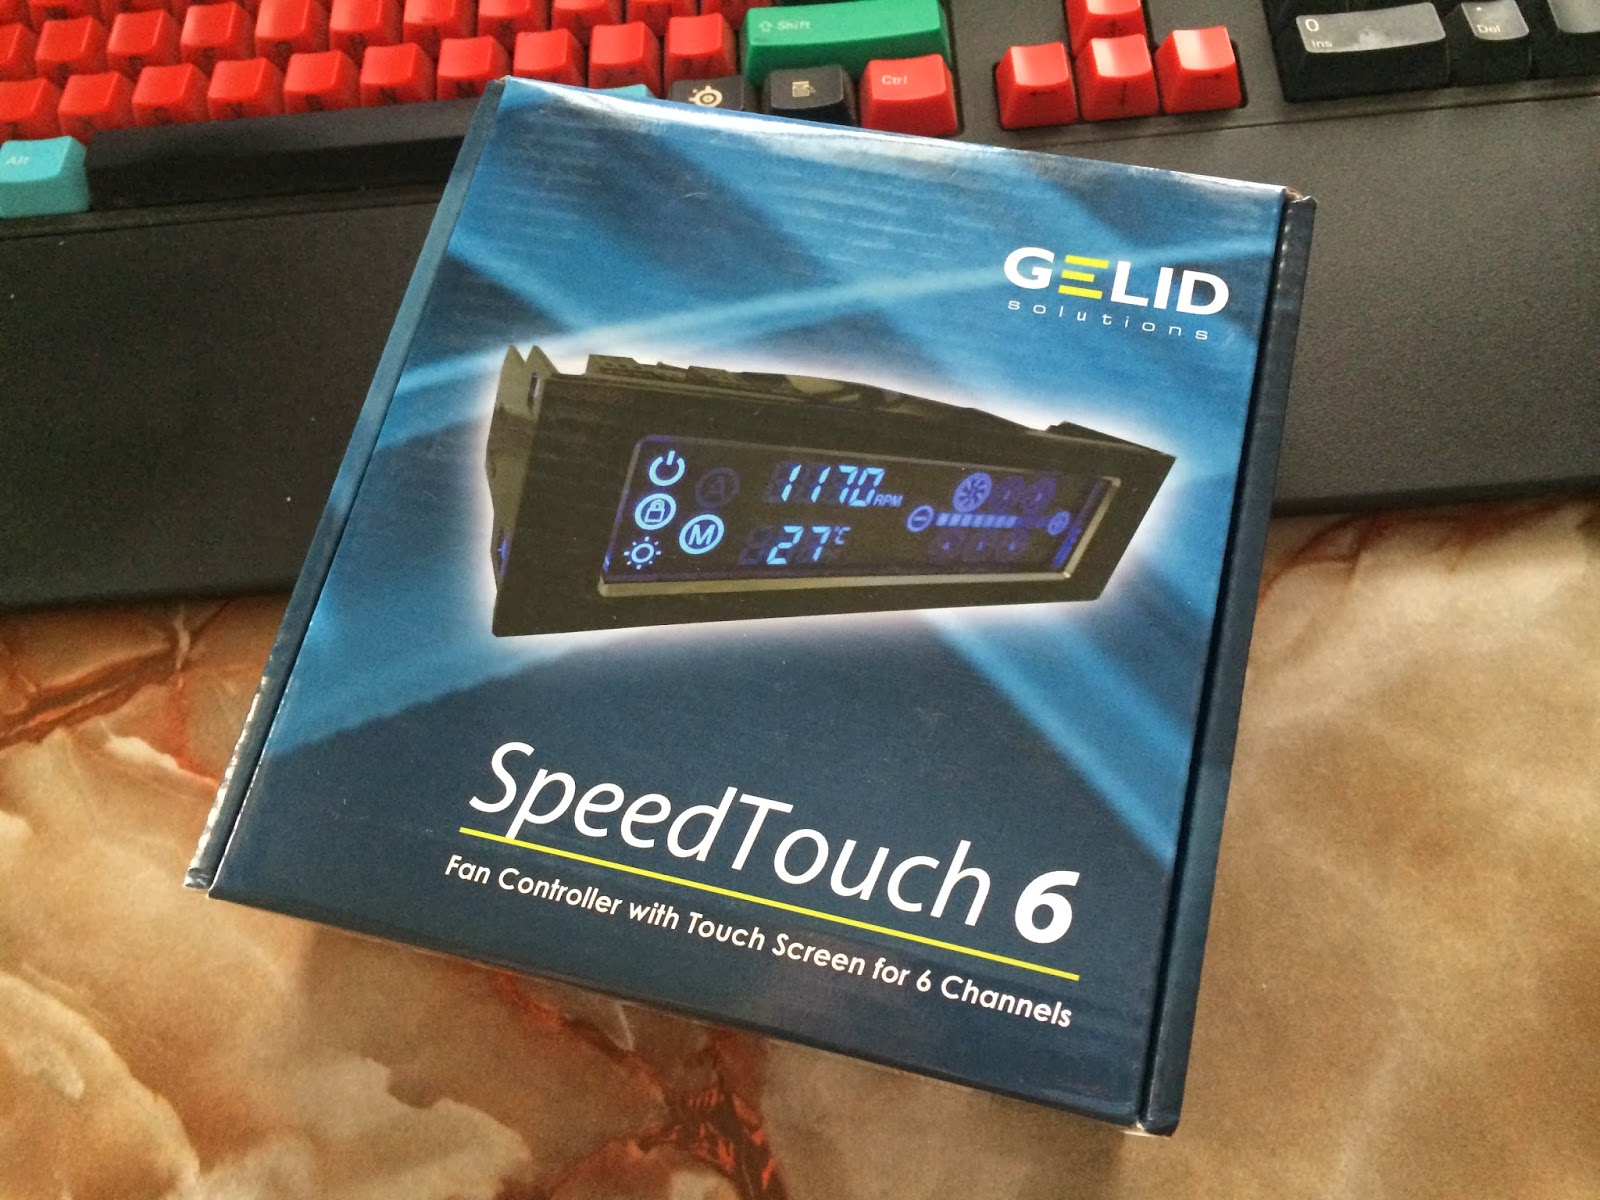 Unboxing& Review - Gelid Solutions SpeedTouch 6 Fan Controller 32